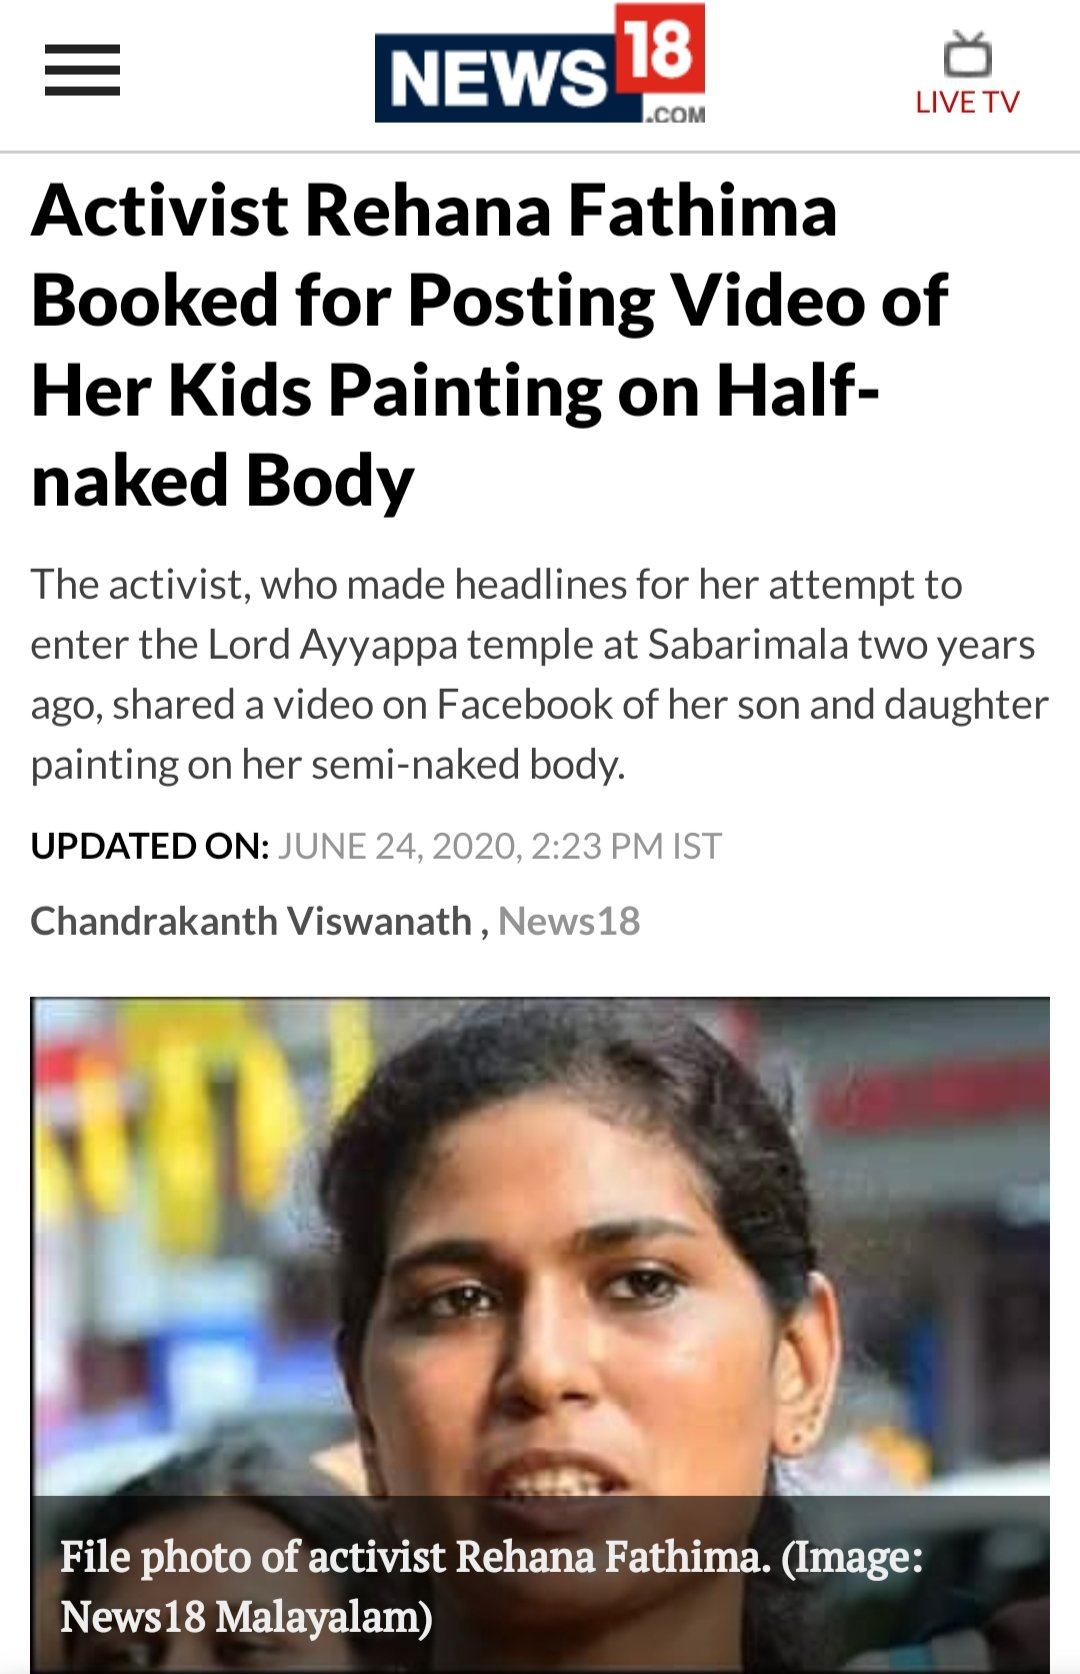 Chandan Saamant On Twitter What Kind Of Sexeducation Is This If It Would Have Been Done By A Man Asking Children To Paint On His Naked Body Wouldn T All Women Activists Hell